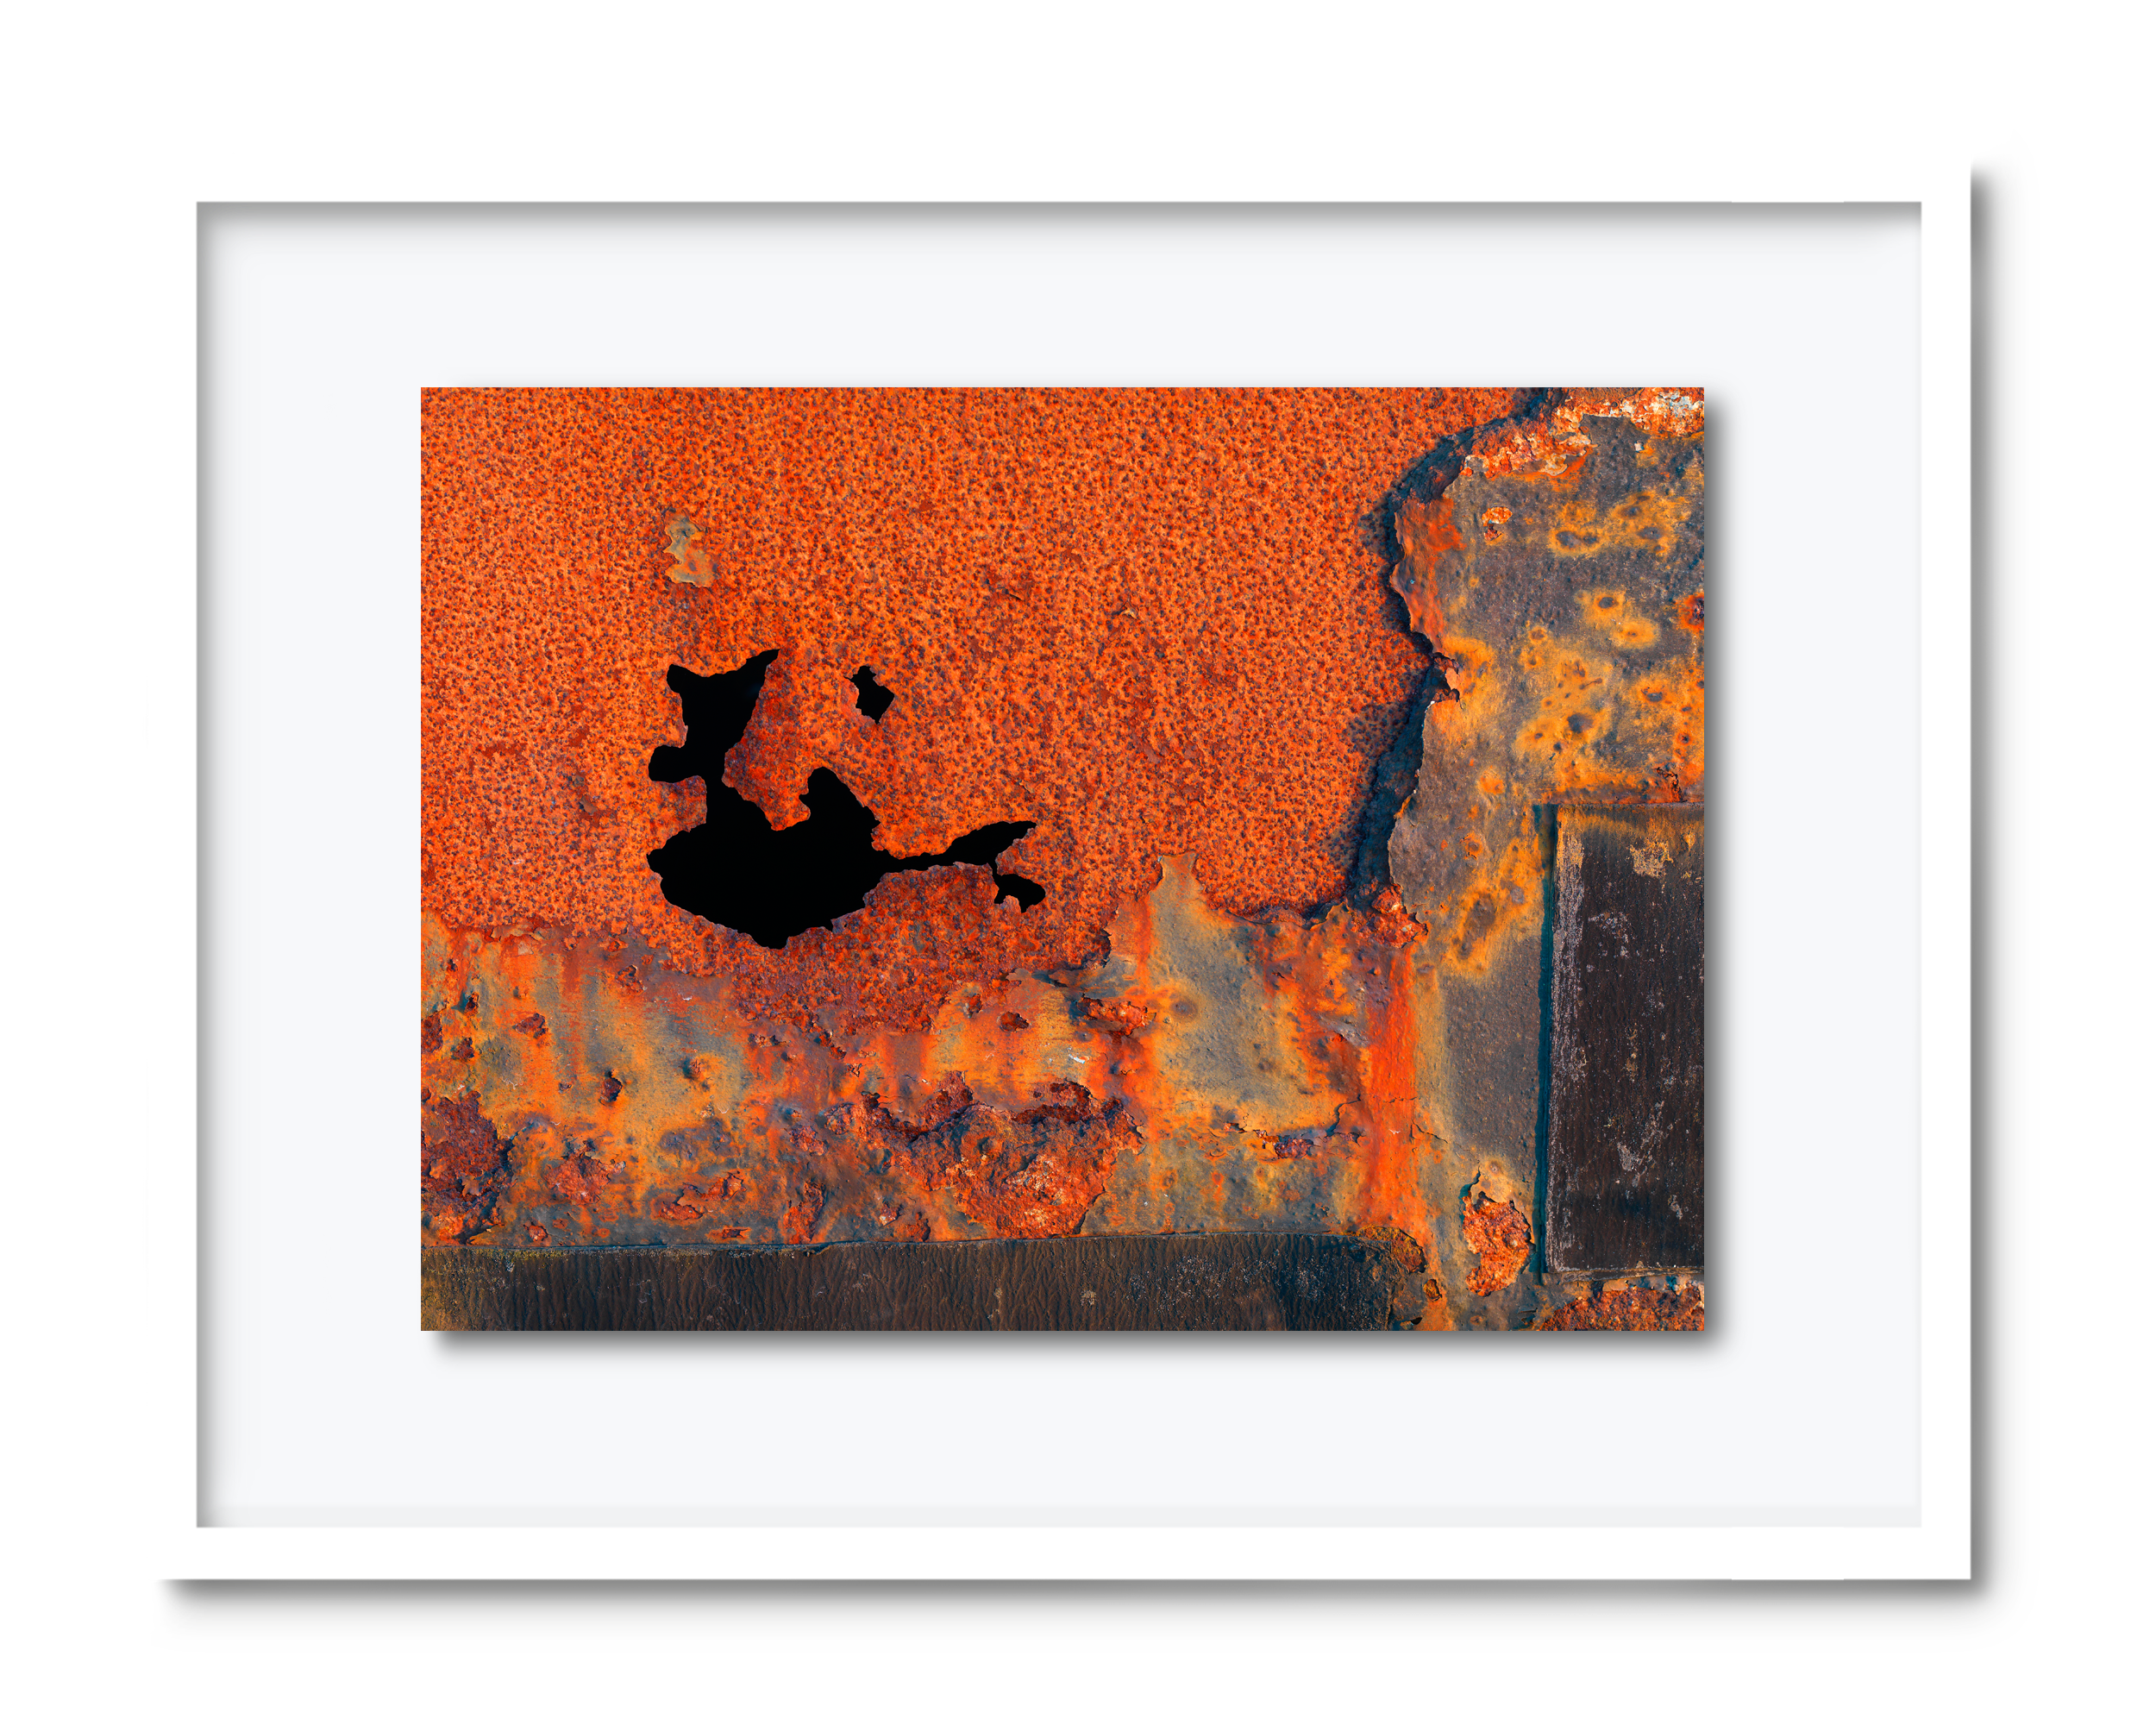 67.david-pearce-rust-texture.png